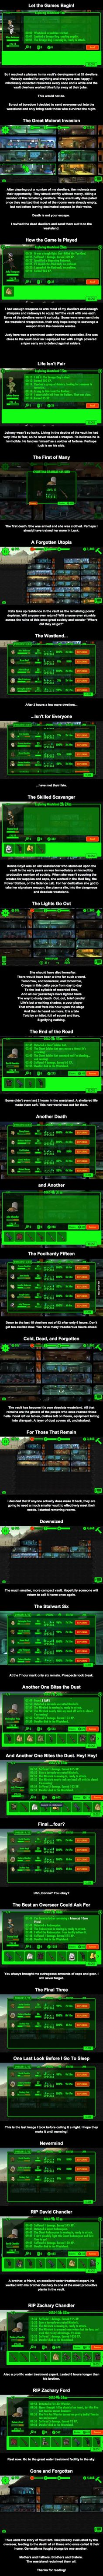 This Guy Got Bored With Fallout Shelter, So He Sent 52 Dwellers Into the Wasteland